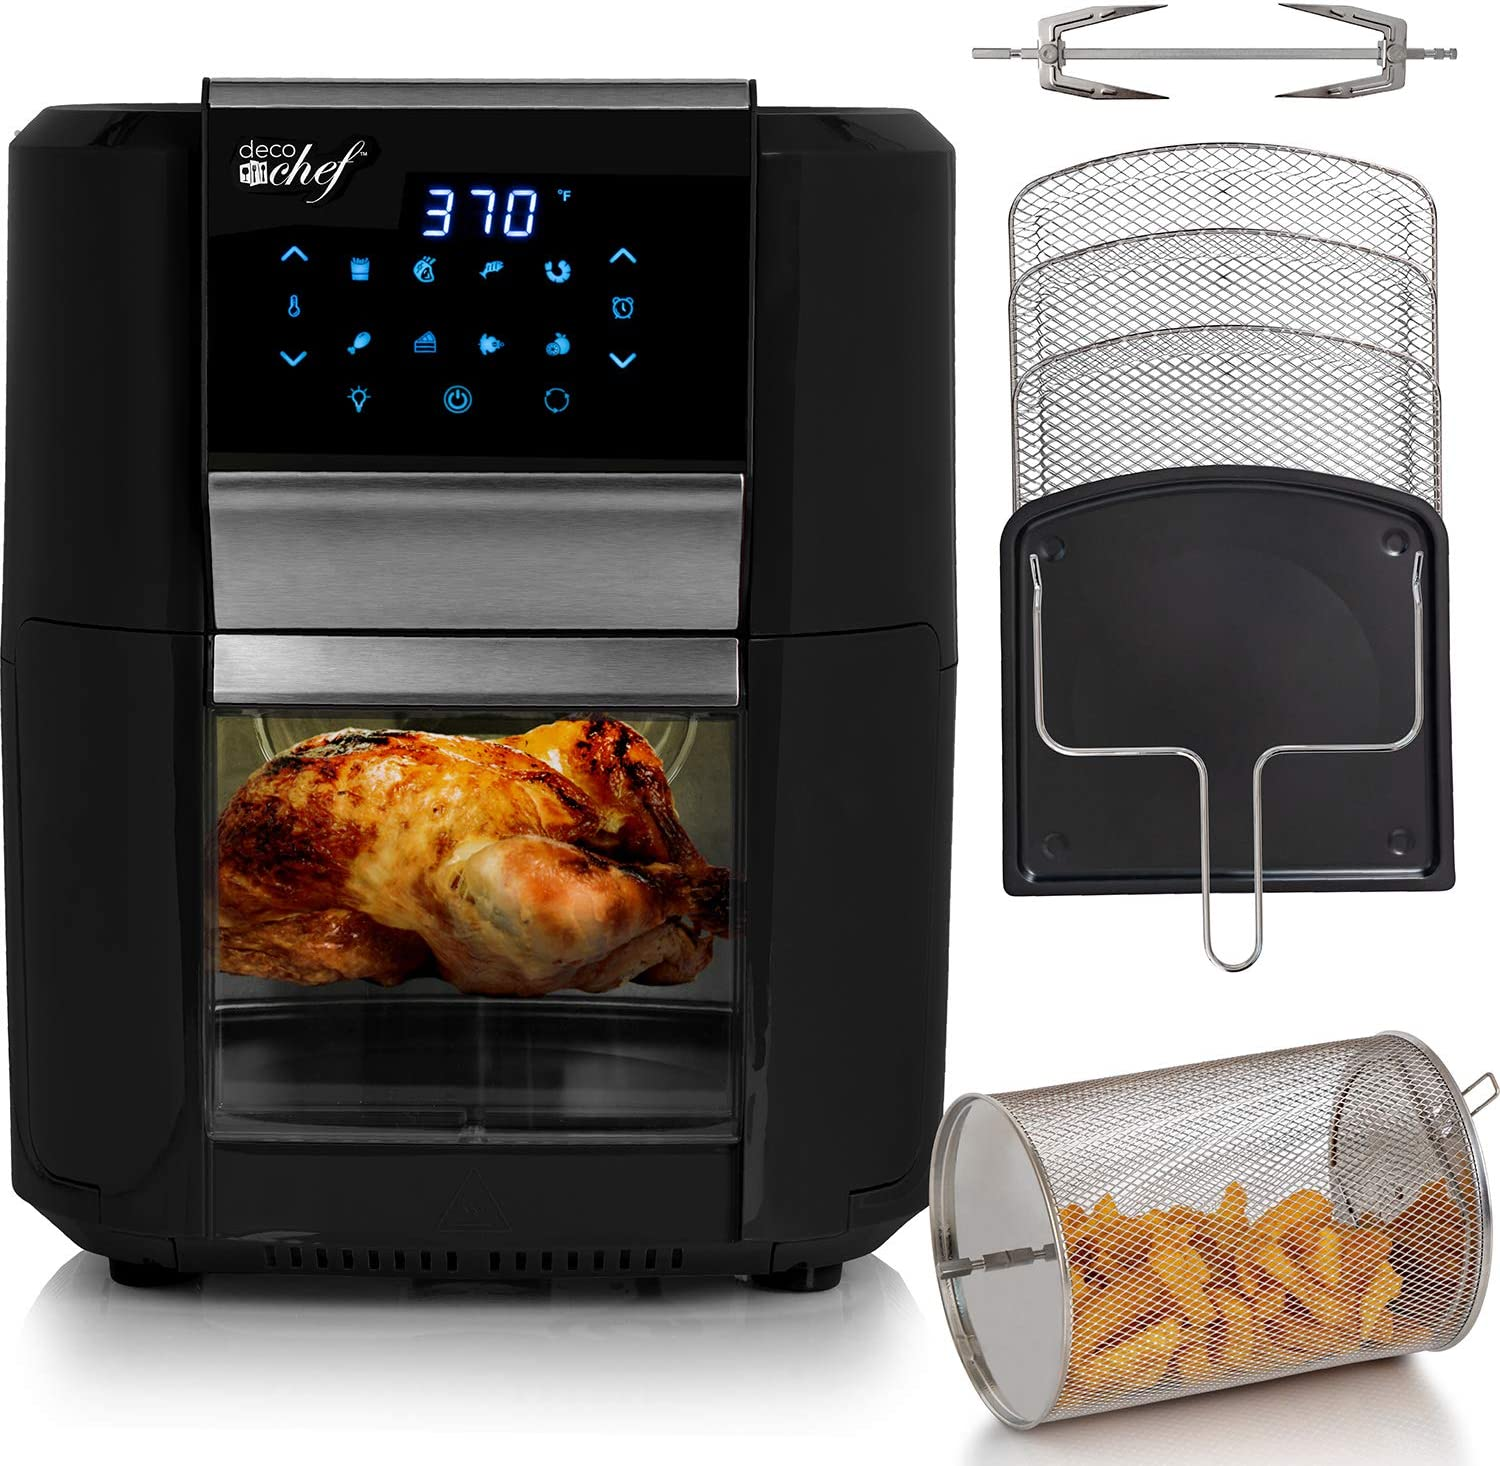 Deco Chef 12.7 QT Digital Air Fryer Oven with 8 Preset Cooking Modes,1700W Power, Cool-Touch Housing, Includes Rotisserie Set, 3 Roasting Racks, Oil Drip Tray, Rotating Basket, ETL Certified (Black)